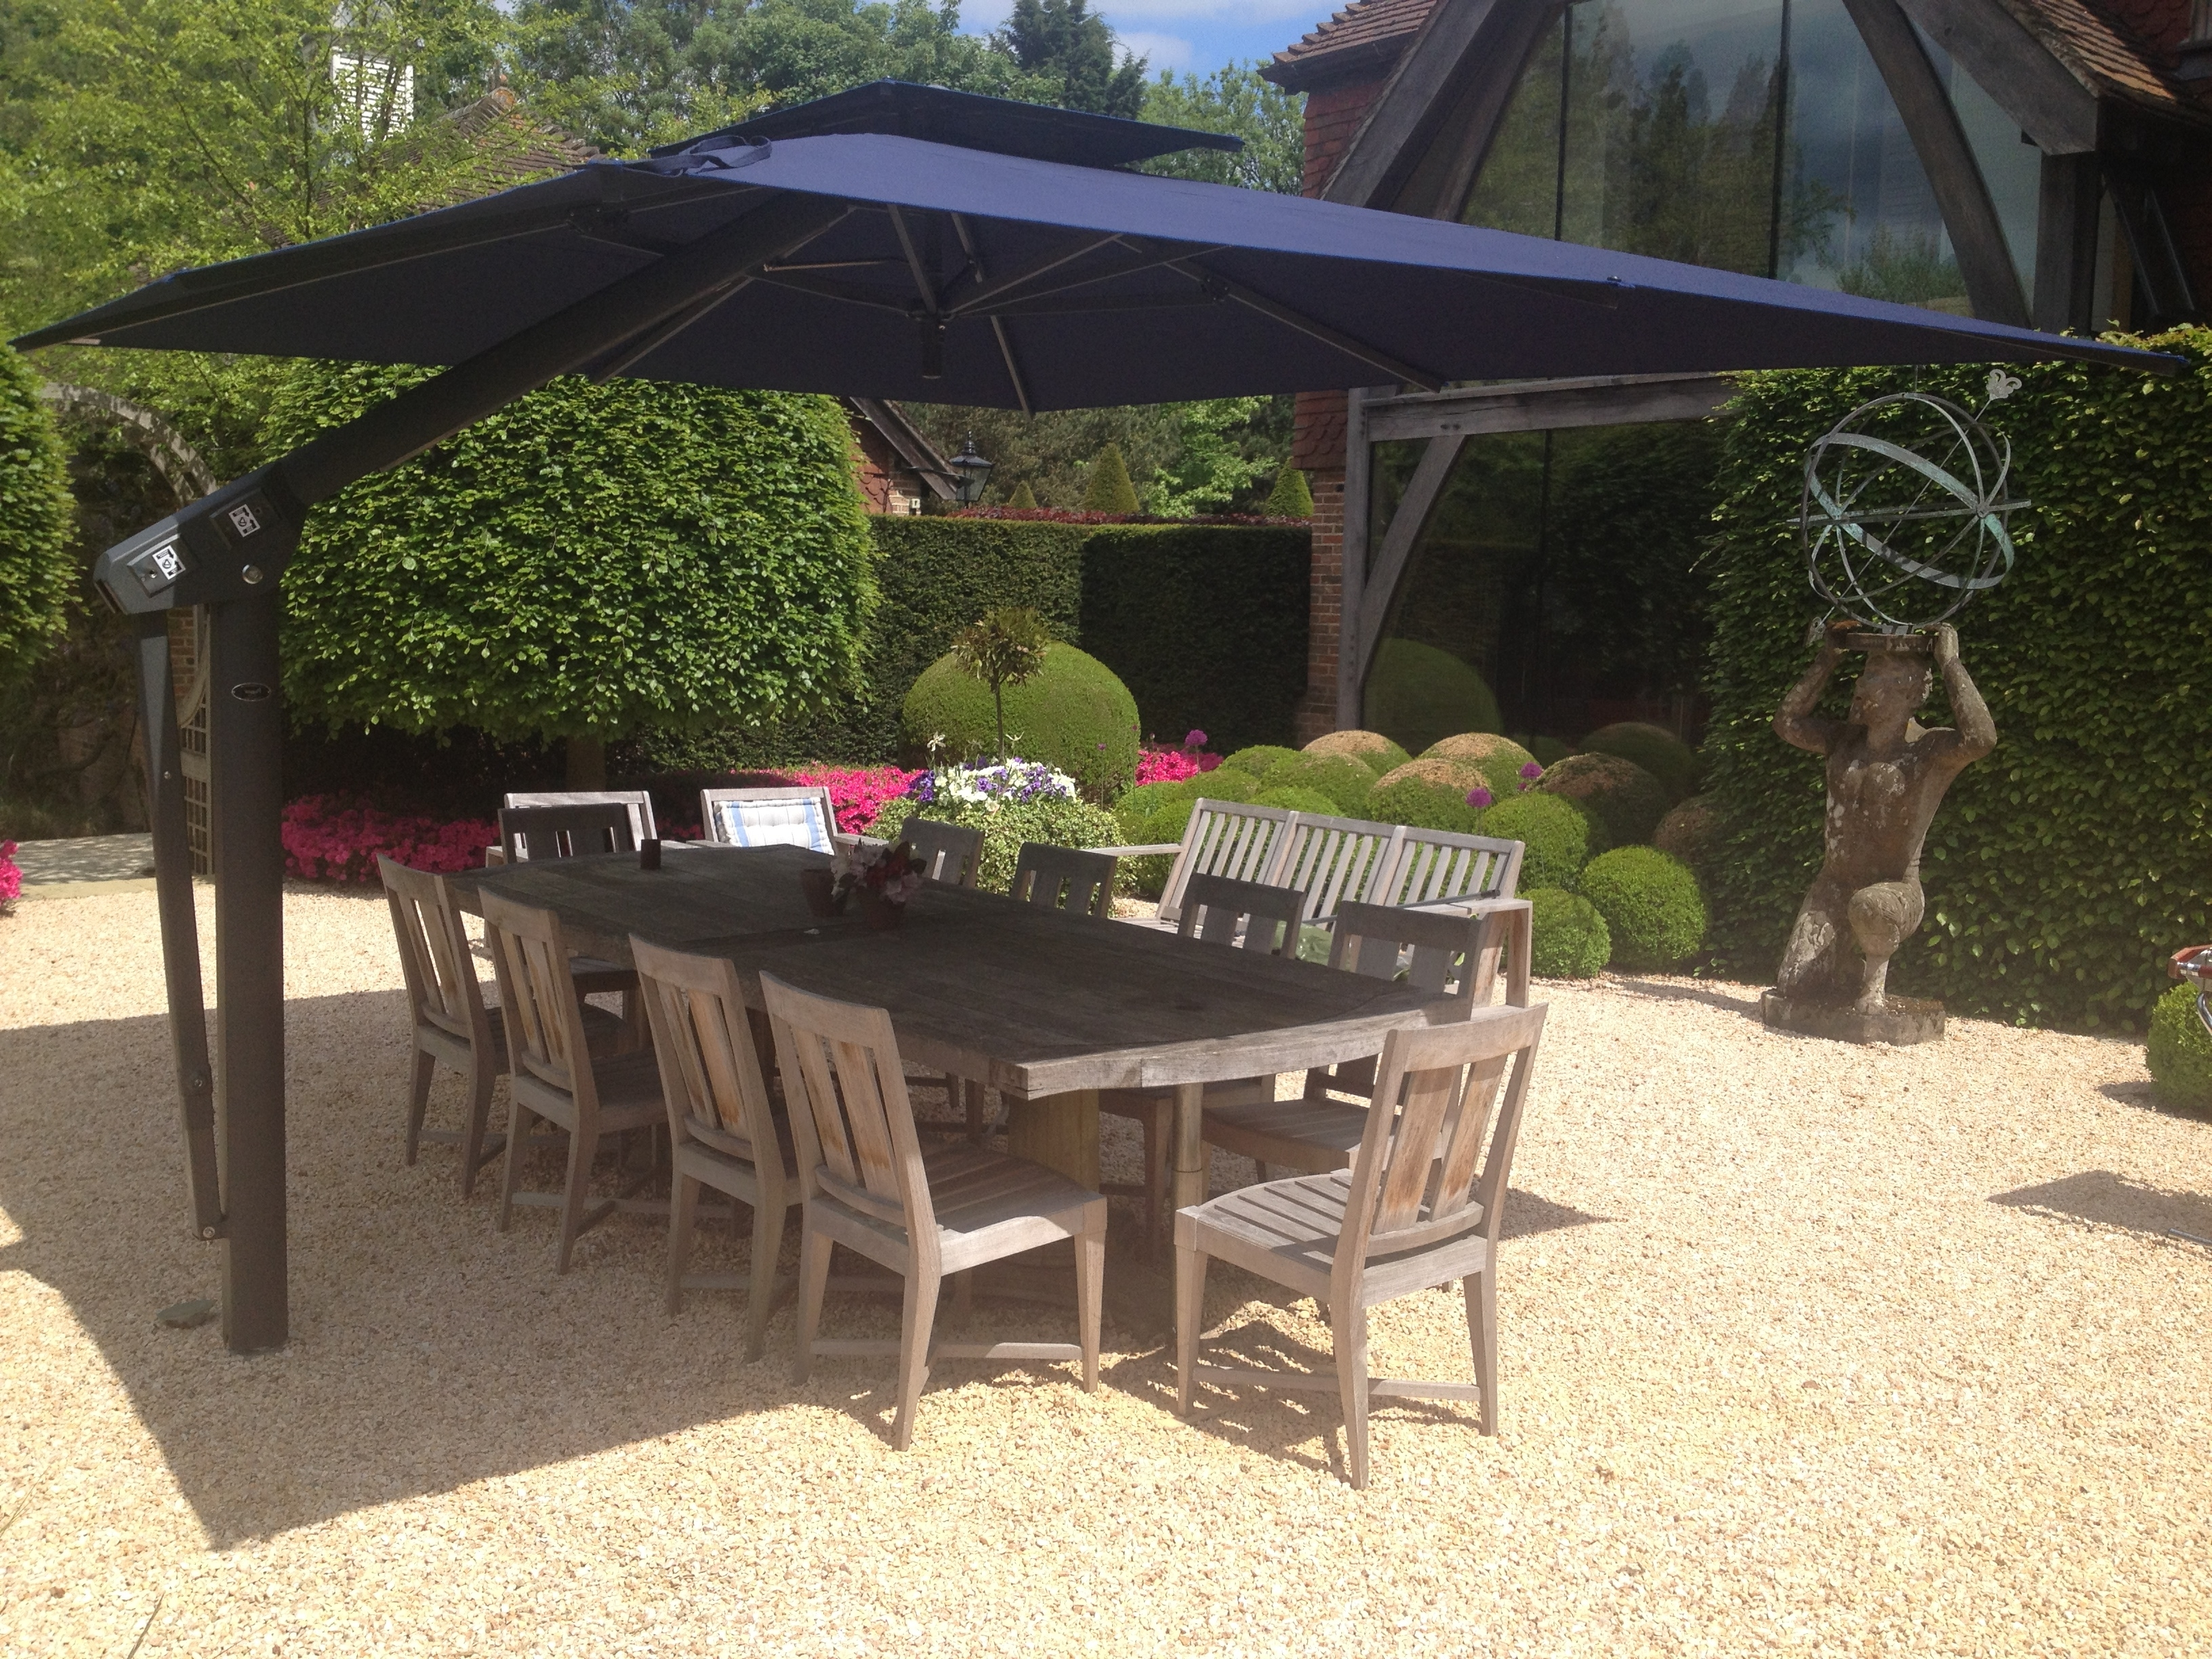 Well Known Heavy Duty Patio Umbrellas Intended For Heavy Duty Patio Umbrellas Uk F84X On Amazing Small Home Decor (View 19 of 20)